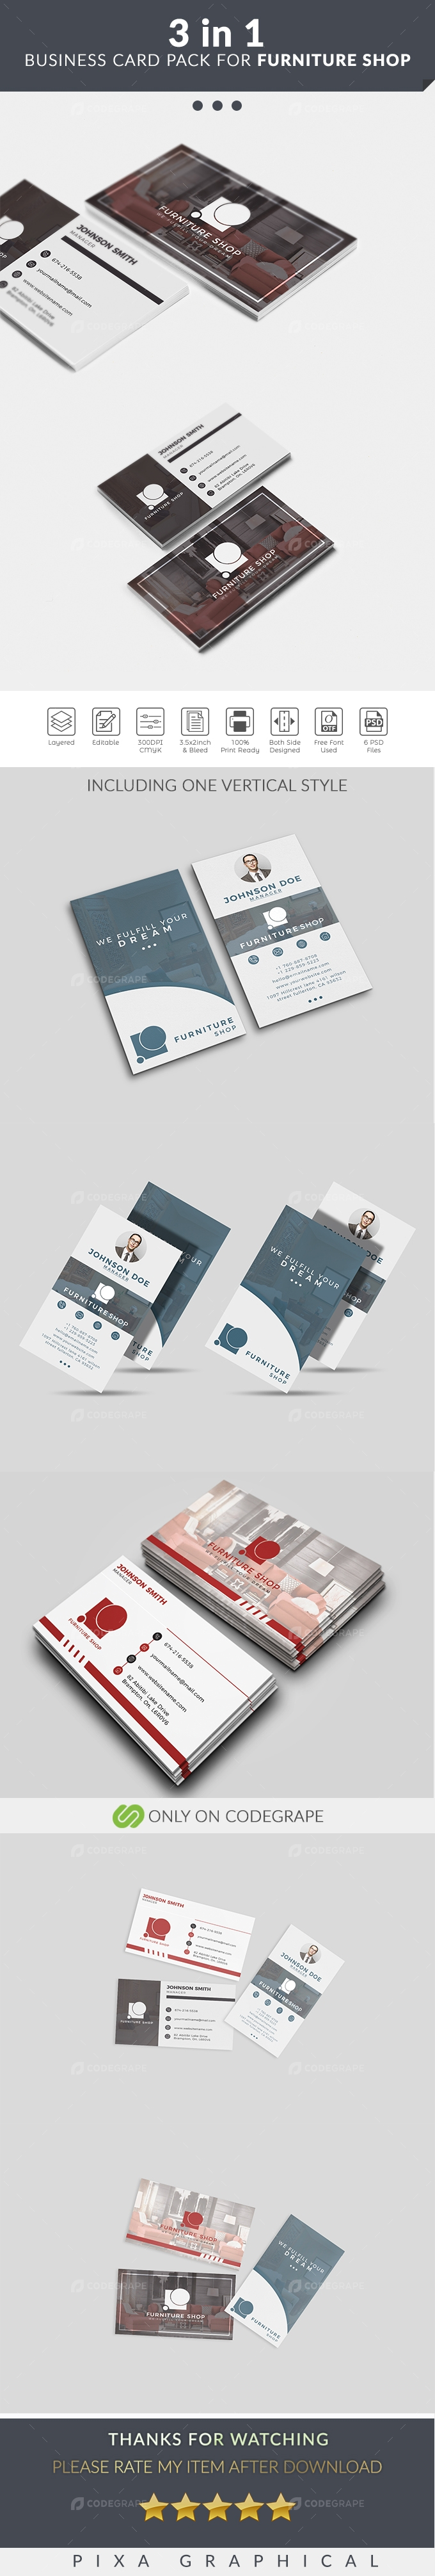 3 in 1 Business Card For Furniture Shop